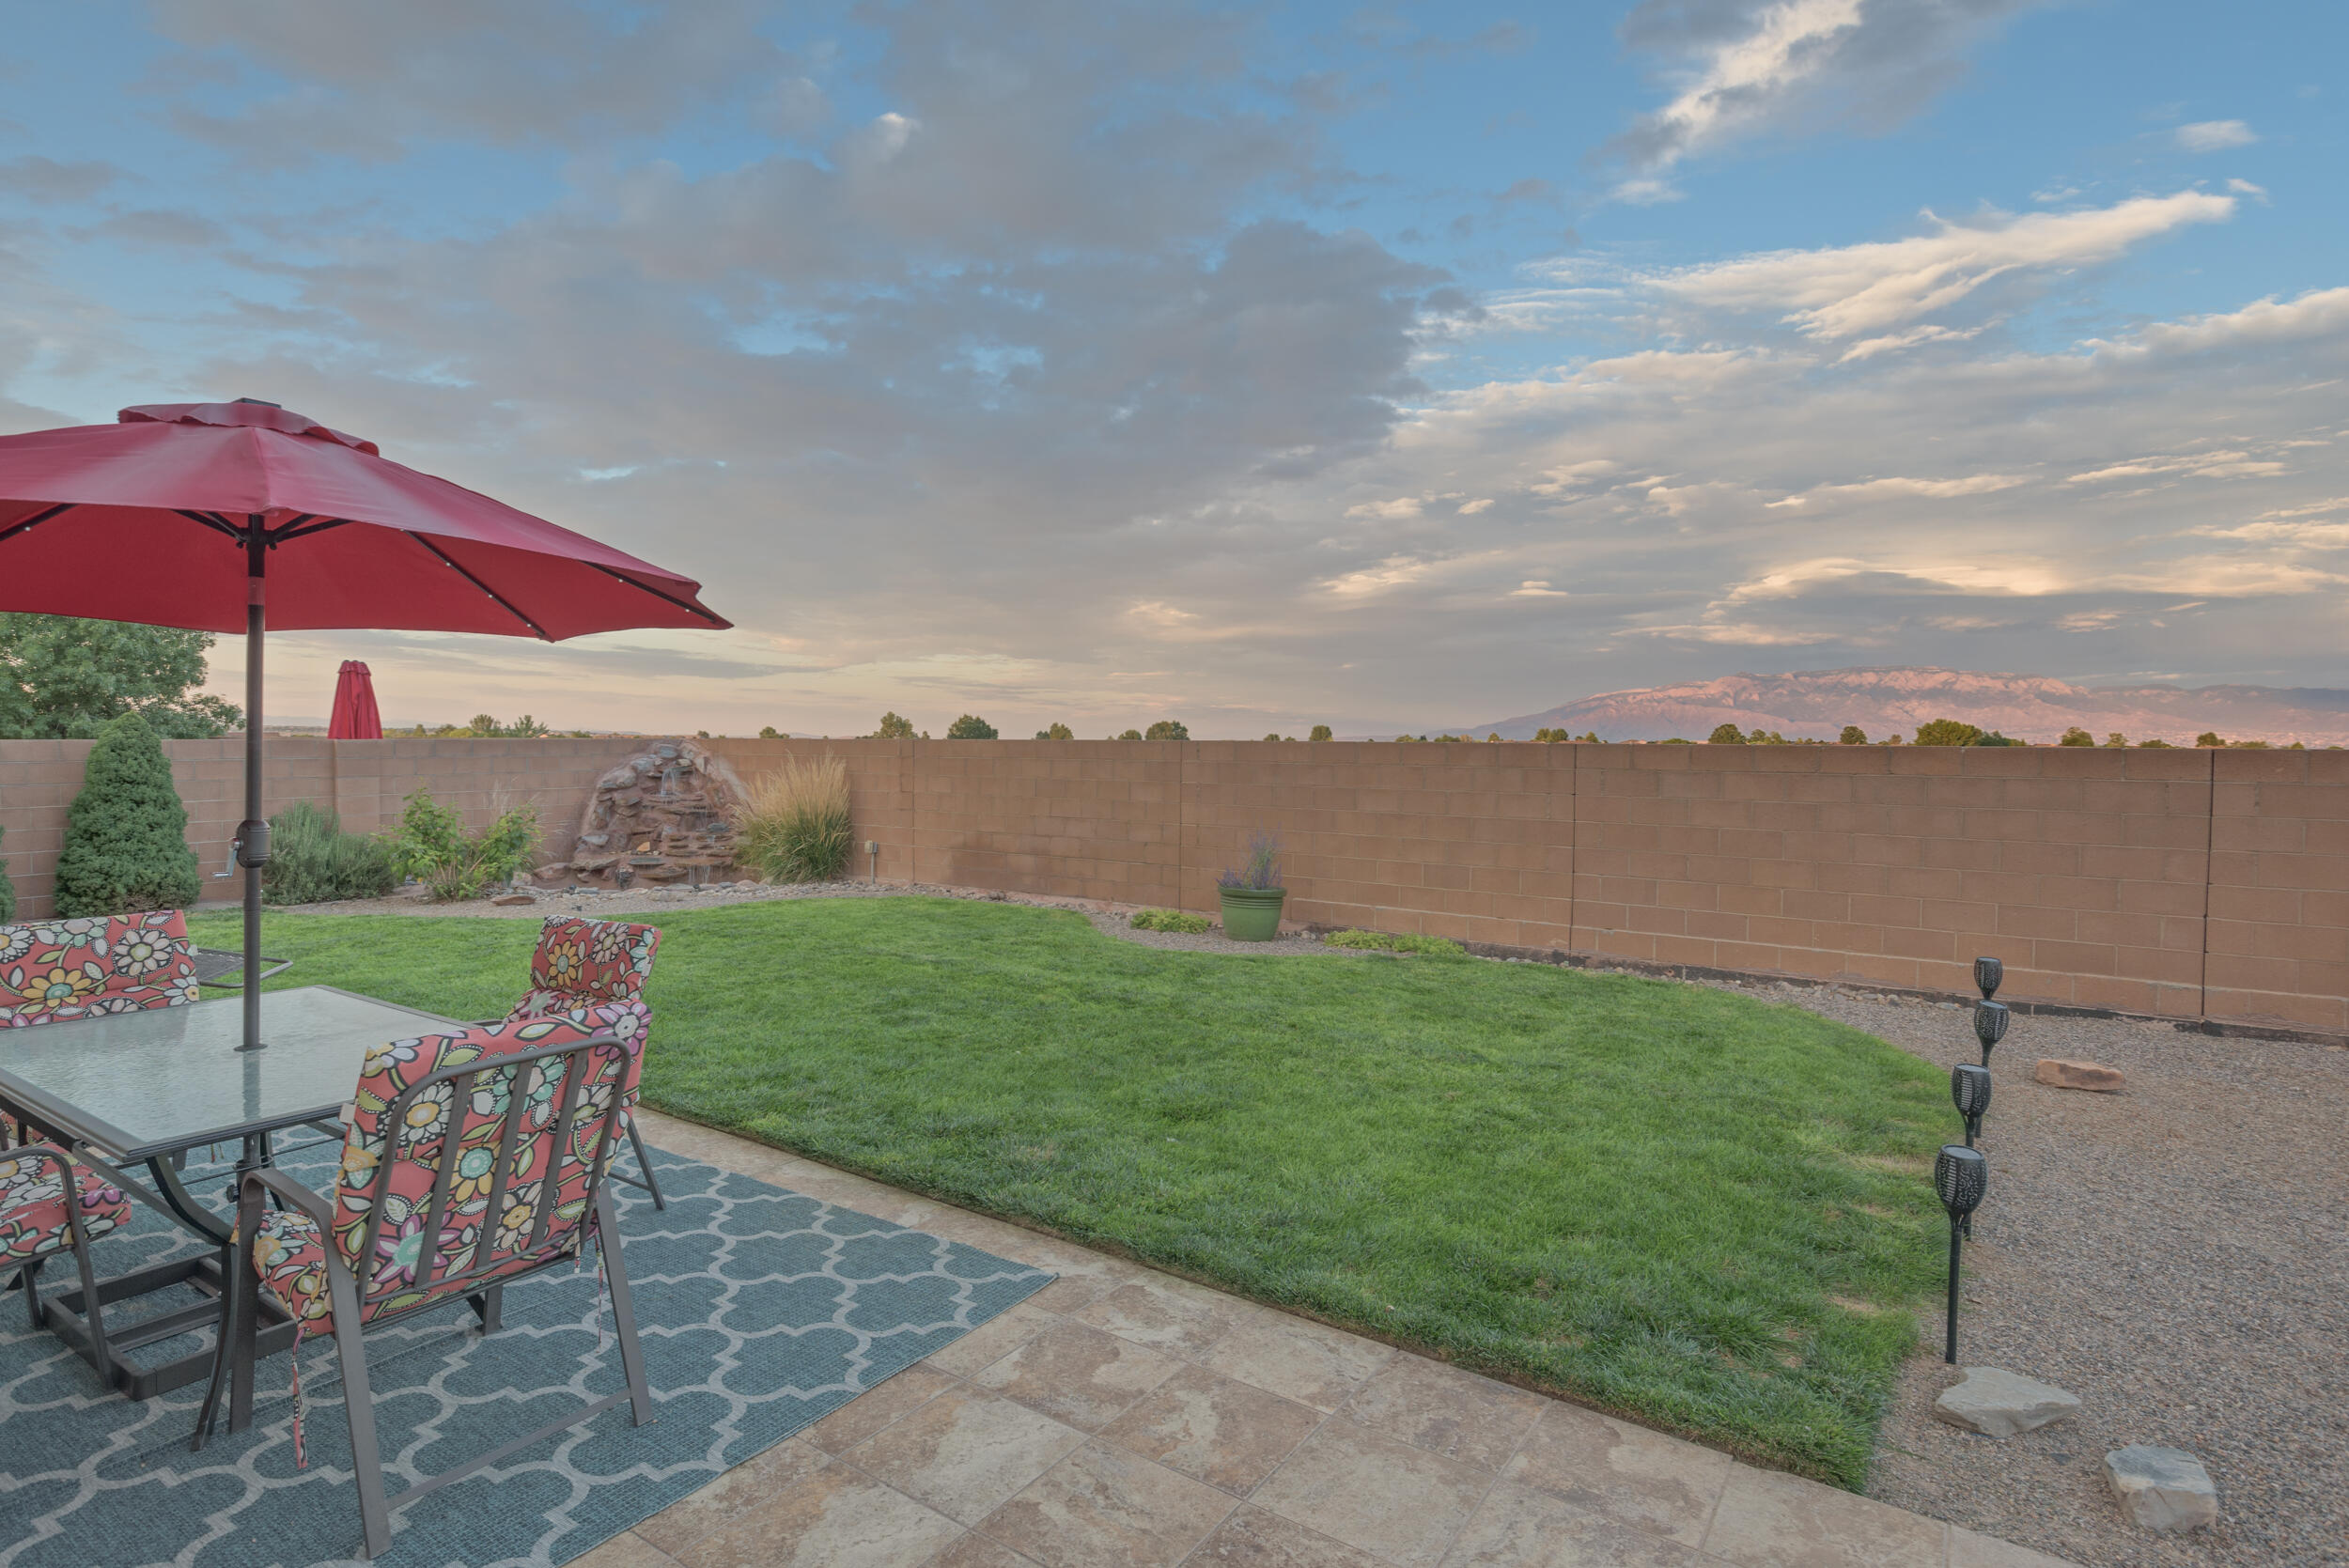 Welcome Home! This two story home offers the master bedroom on the main floor for all ages with a full bathroom & walk in closet with plenty of space.  Enjoy the beautiful open floor plan with kitchen and living room connected for entertaining.  The backyard is one of a kind in this area with no obstructed views of the Sandia Mountains and nightly NM sunsets to sit back and enjoy. Relax with the custom water feature in the corner that washes your worries away for the night. There is also separate dog run area. Upstairs you will find two additional bedrooms with a full bathroom along with a very large loft area that could be multiple things, you can even see the Sandias from there!